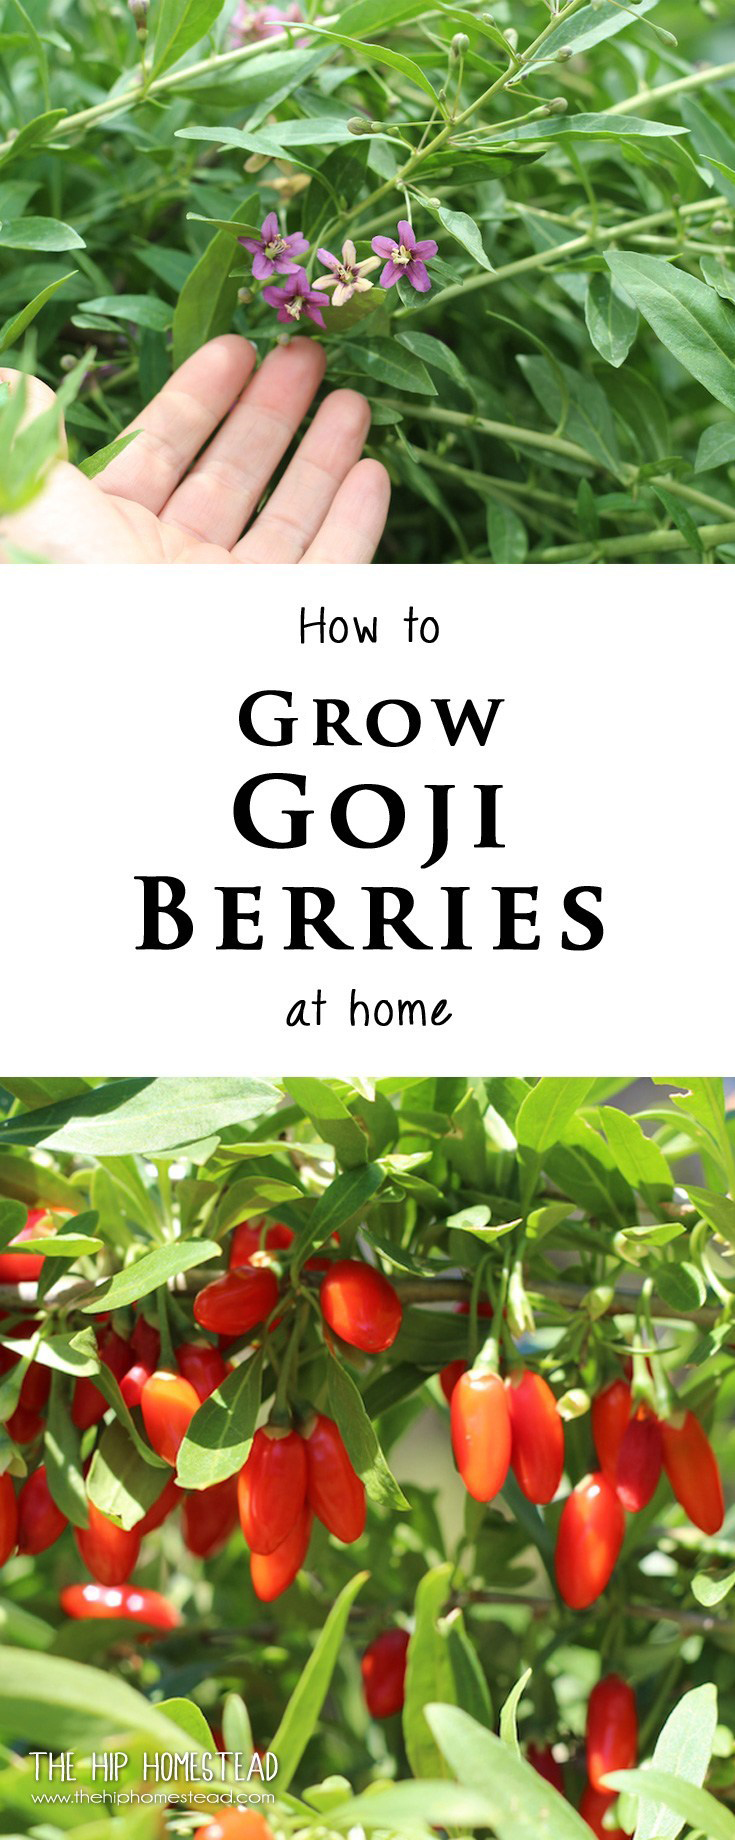 Growing Goji Berries How To Grow Goji Berry Plants At Home The